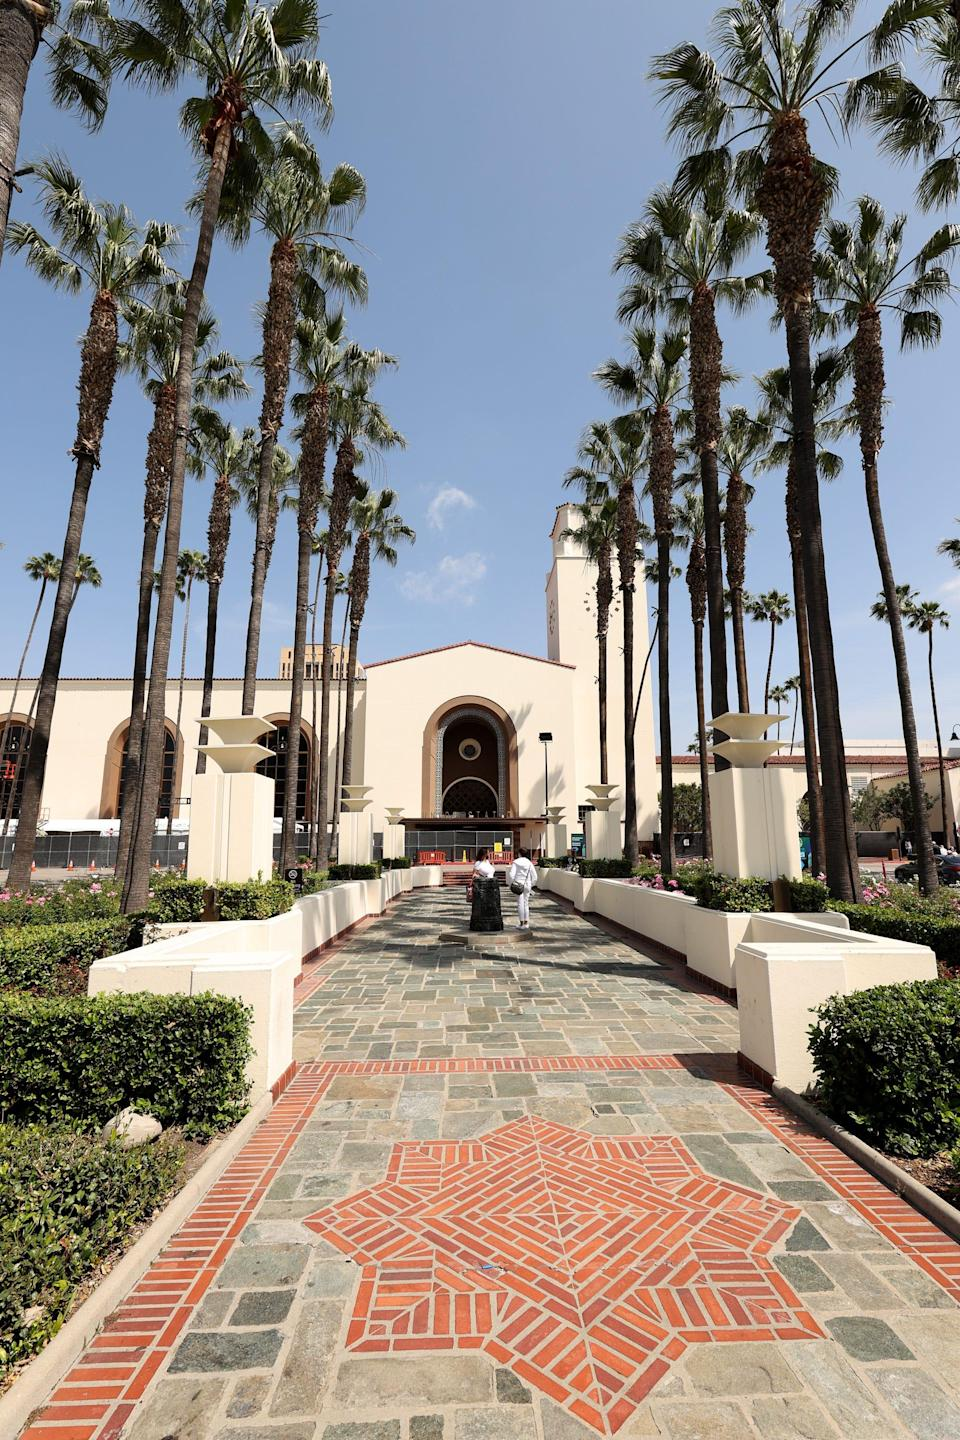 Union Station will serve as the primary location for the 93rd Annual Academy Awards that will air on April 25.